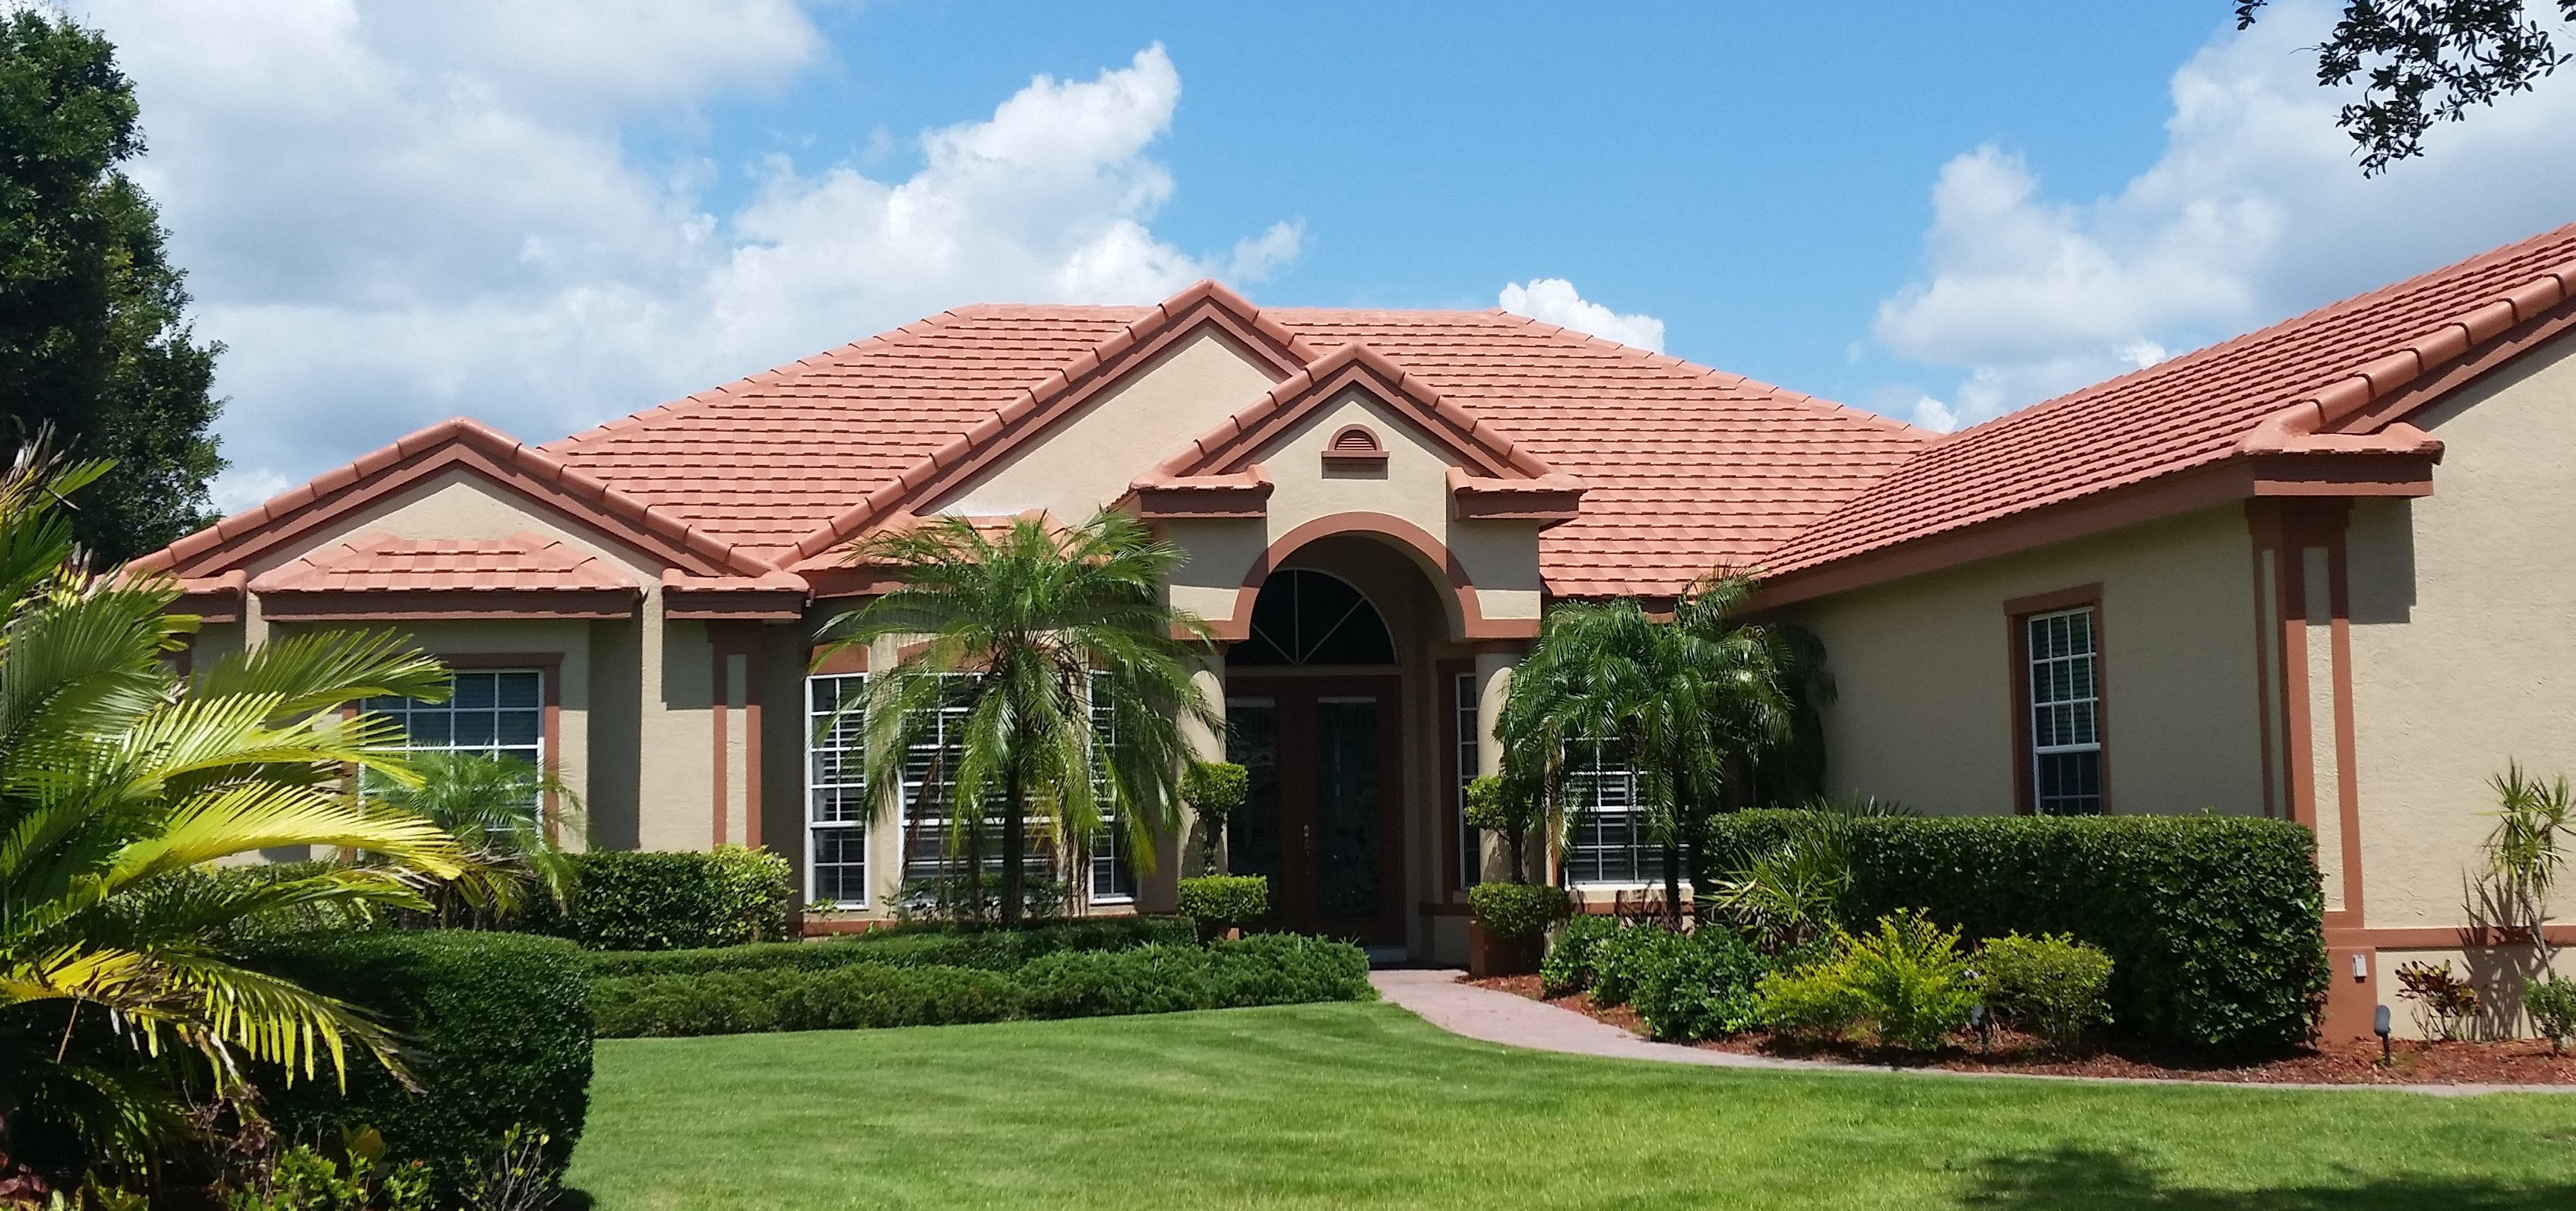 Absolute Roofing of Florida image 0